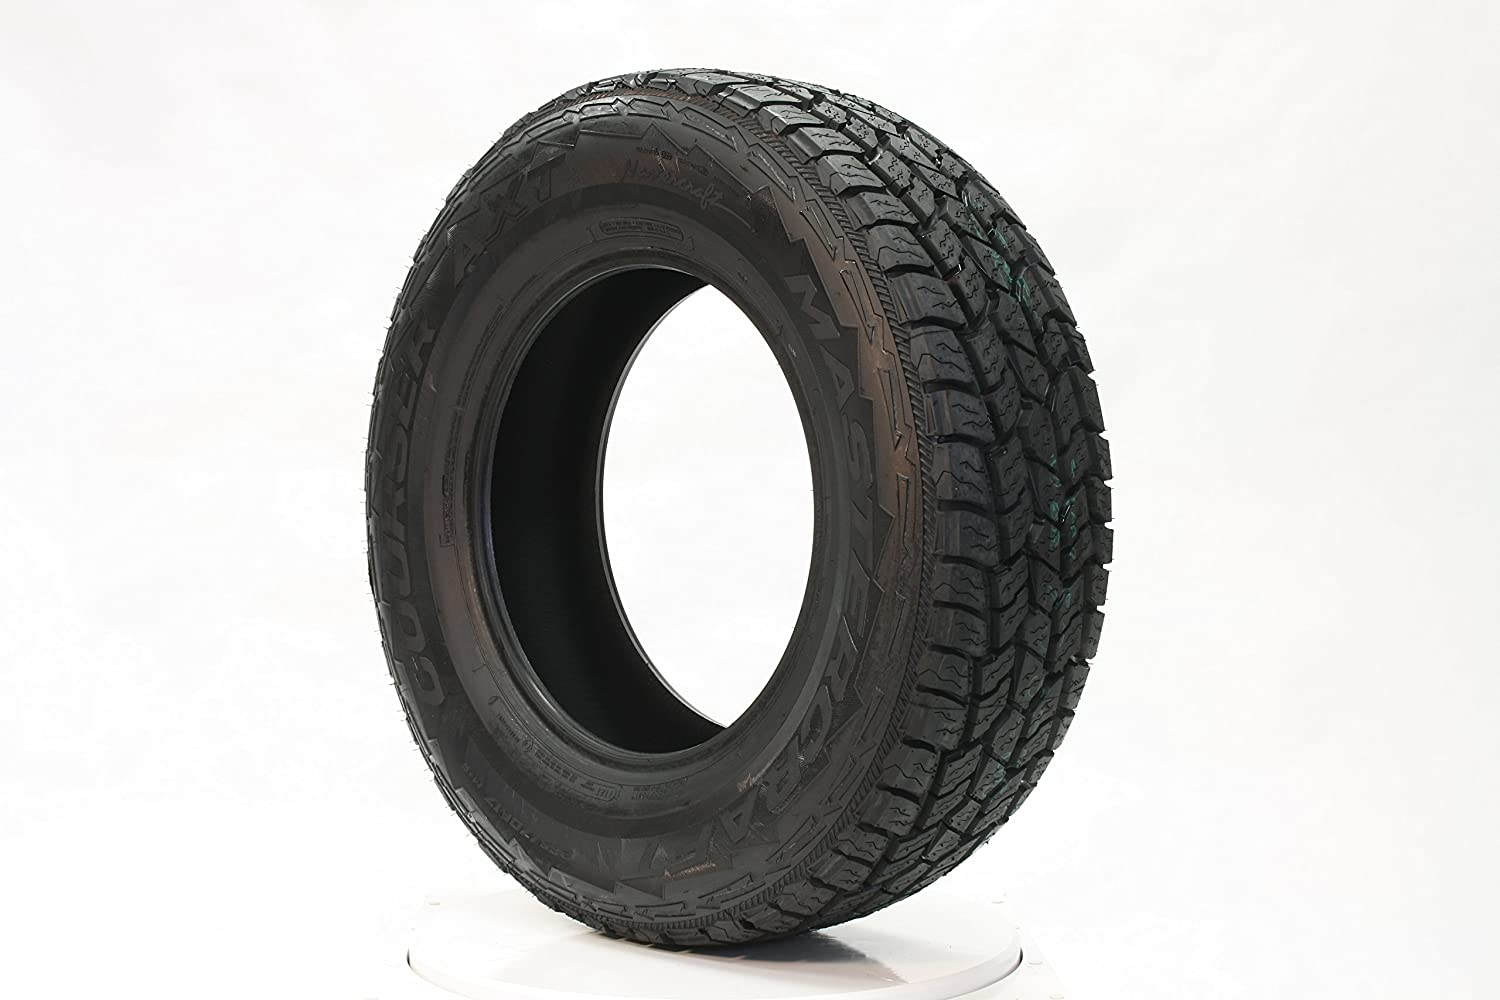 Mastercraft Courser AXT Radial Tire - 265/70R17 121R 90000005544